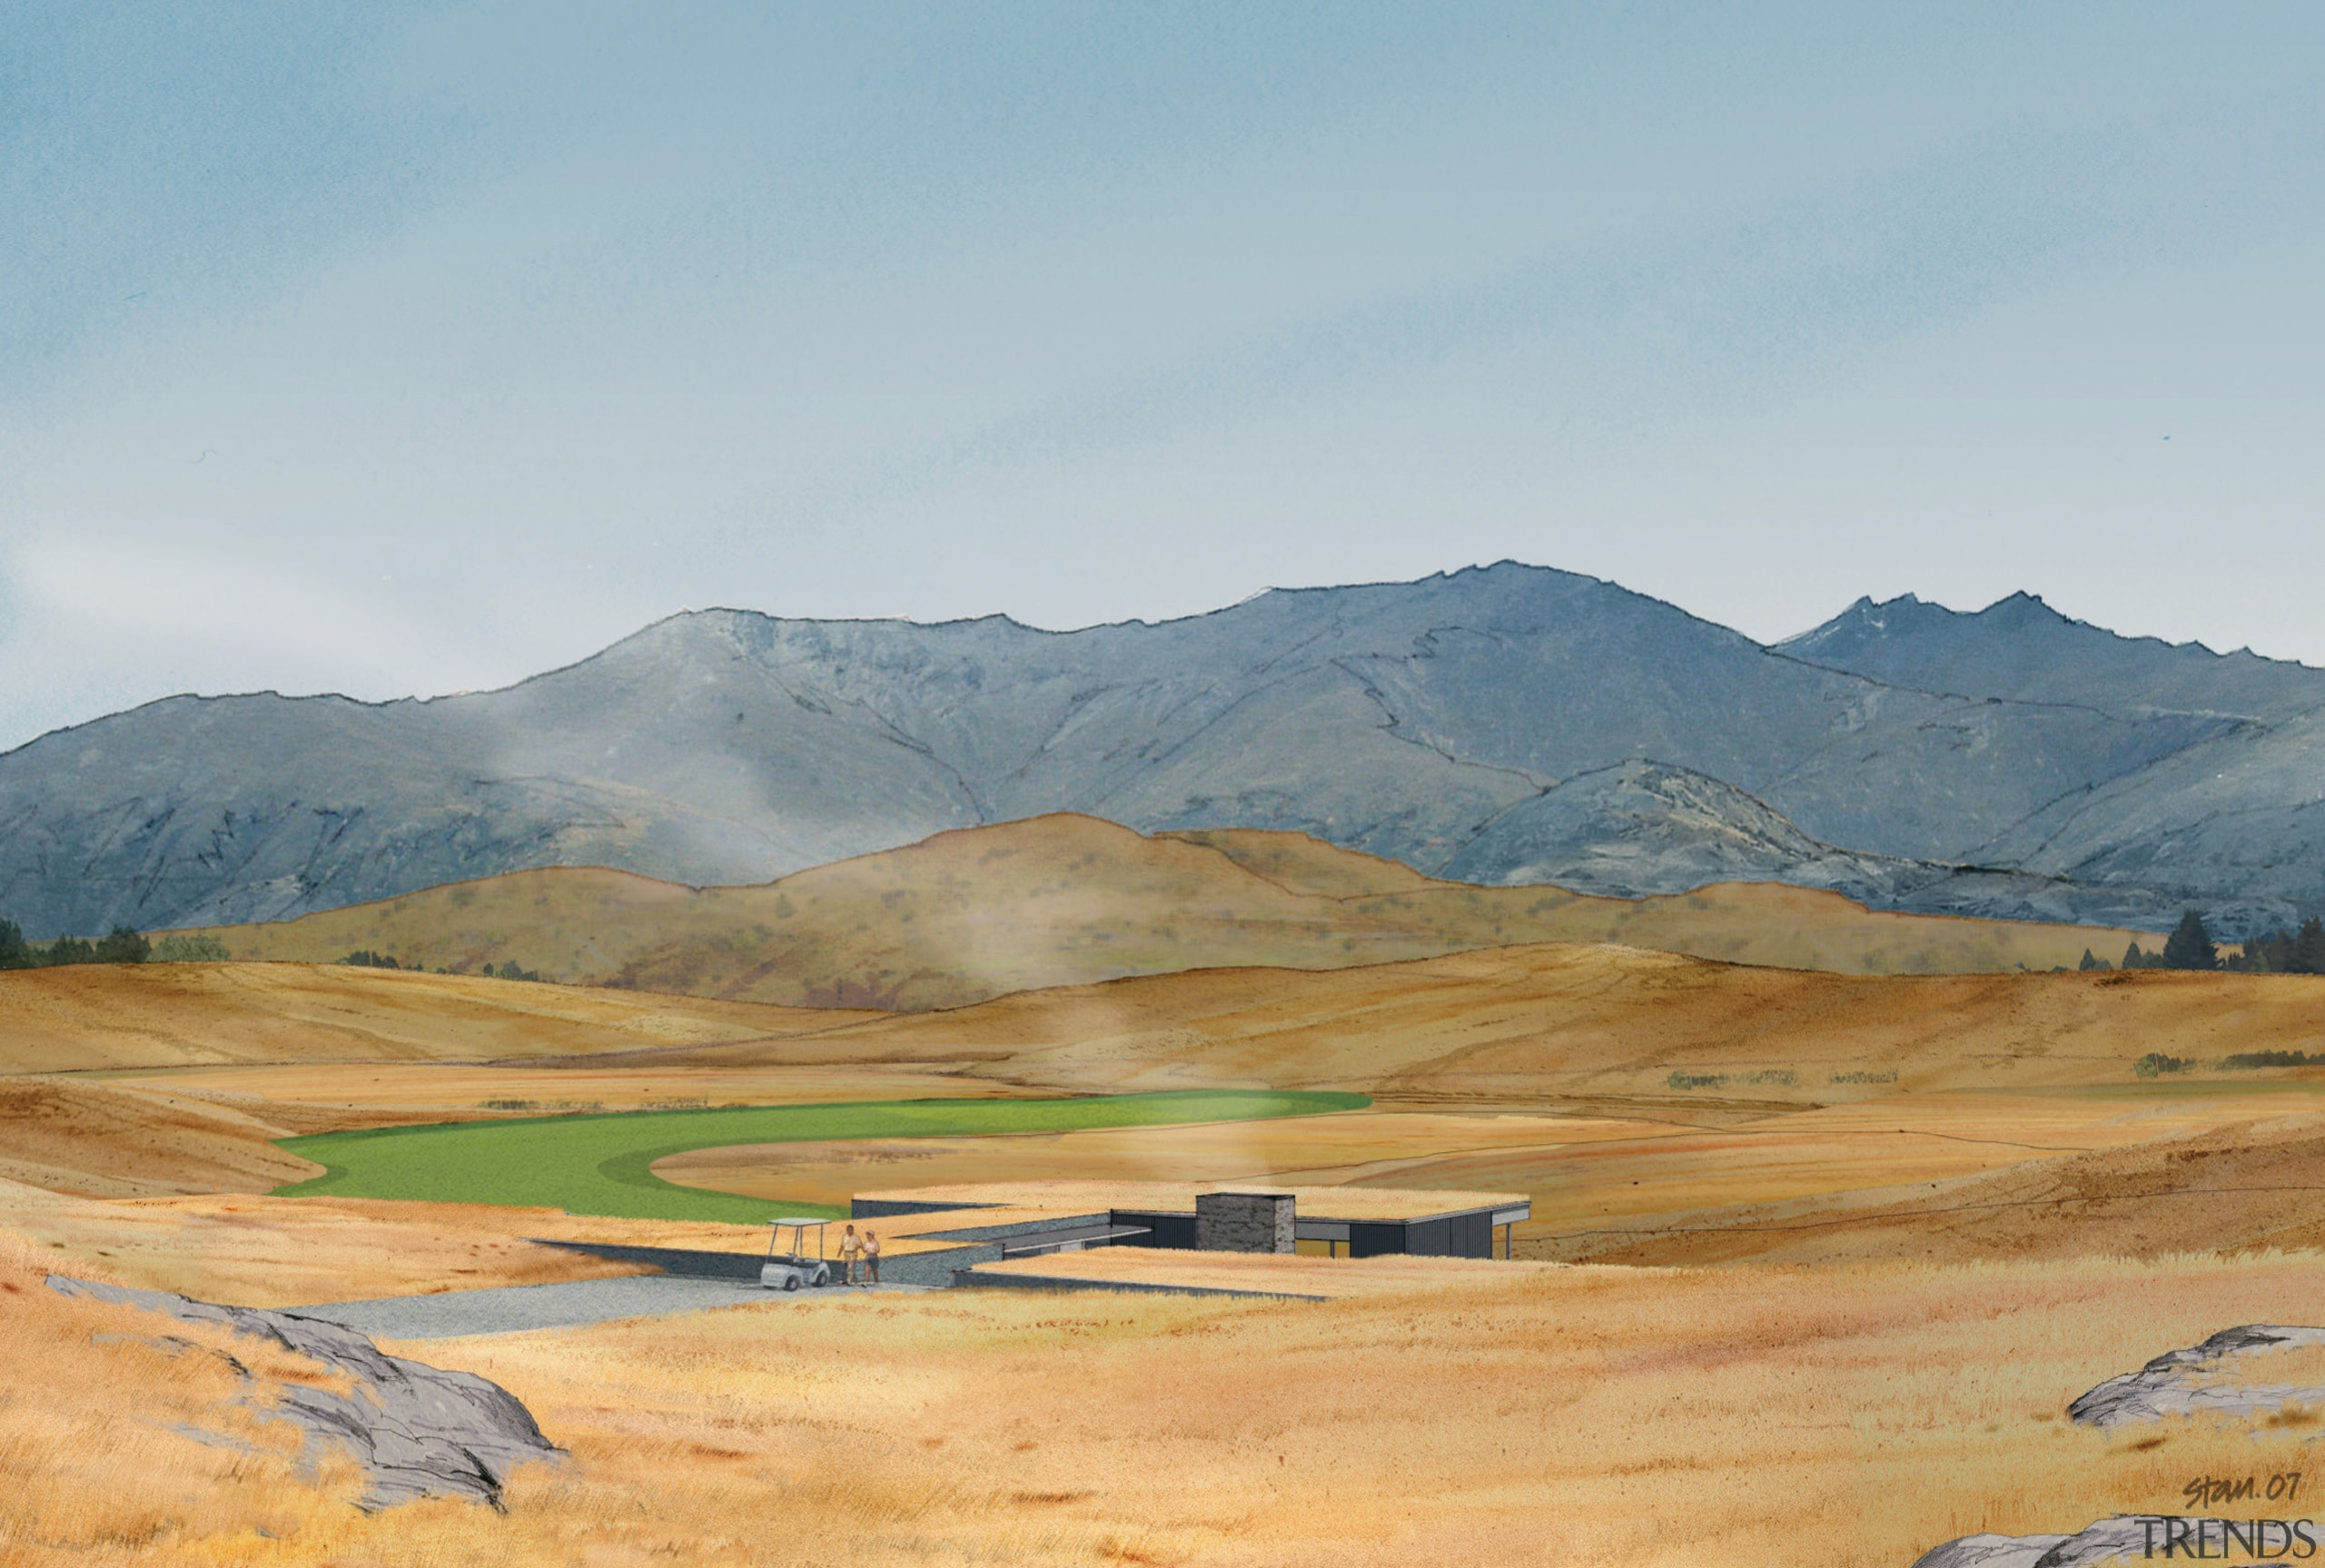 conceptual view of the residential lots proposed for cloud, ecoregion, ecosystem, elevation, fell, field, grassland, highland, hill, landscape, mountain, mountain range, mountainous landforms, plain, plateau, rural area, sky, steppe, tundra, gray